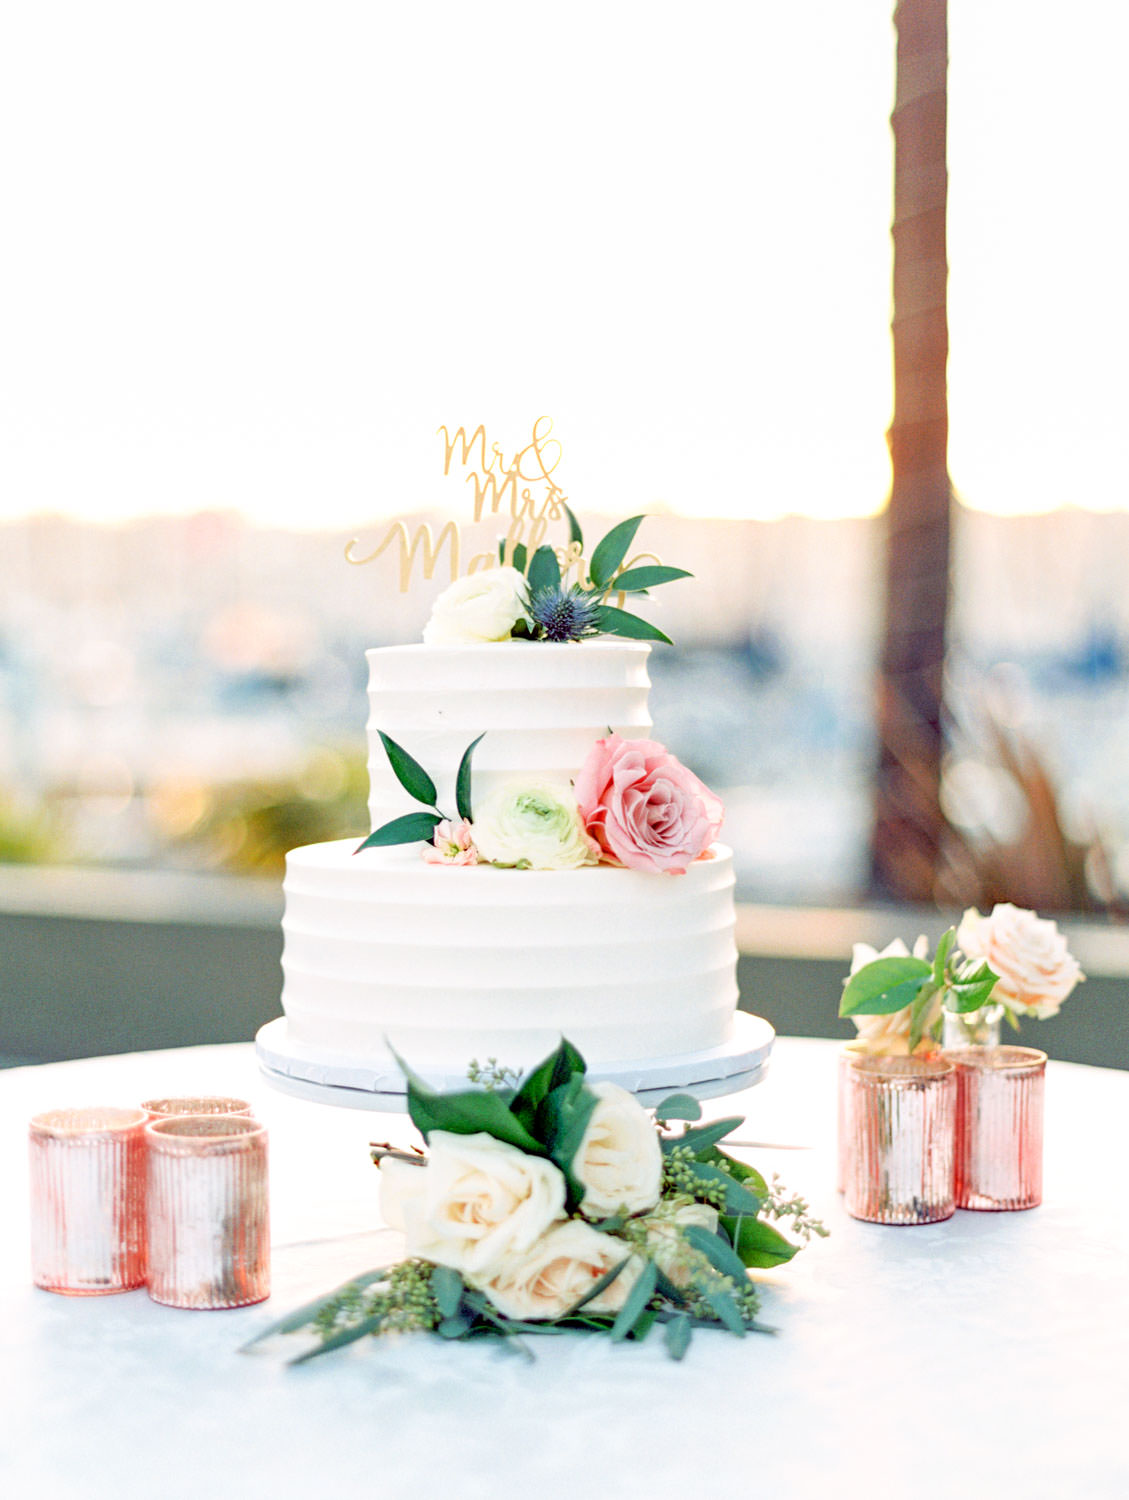 Two tier white classic wedding cake decorated in pink and ivory roses and greenery surrounded by rose gold votives captured on film. Wedding at Humphreys Half Moon Inn by Cavin Elizabeth Photography